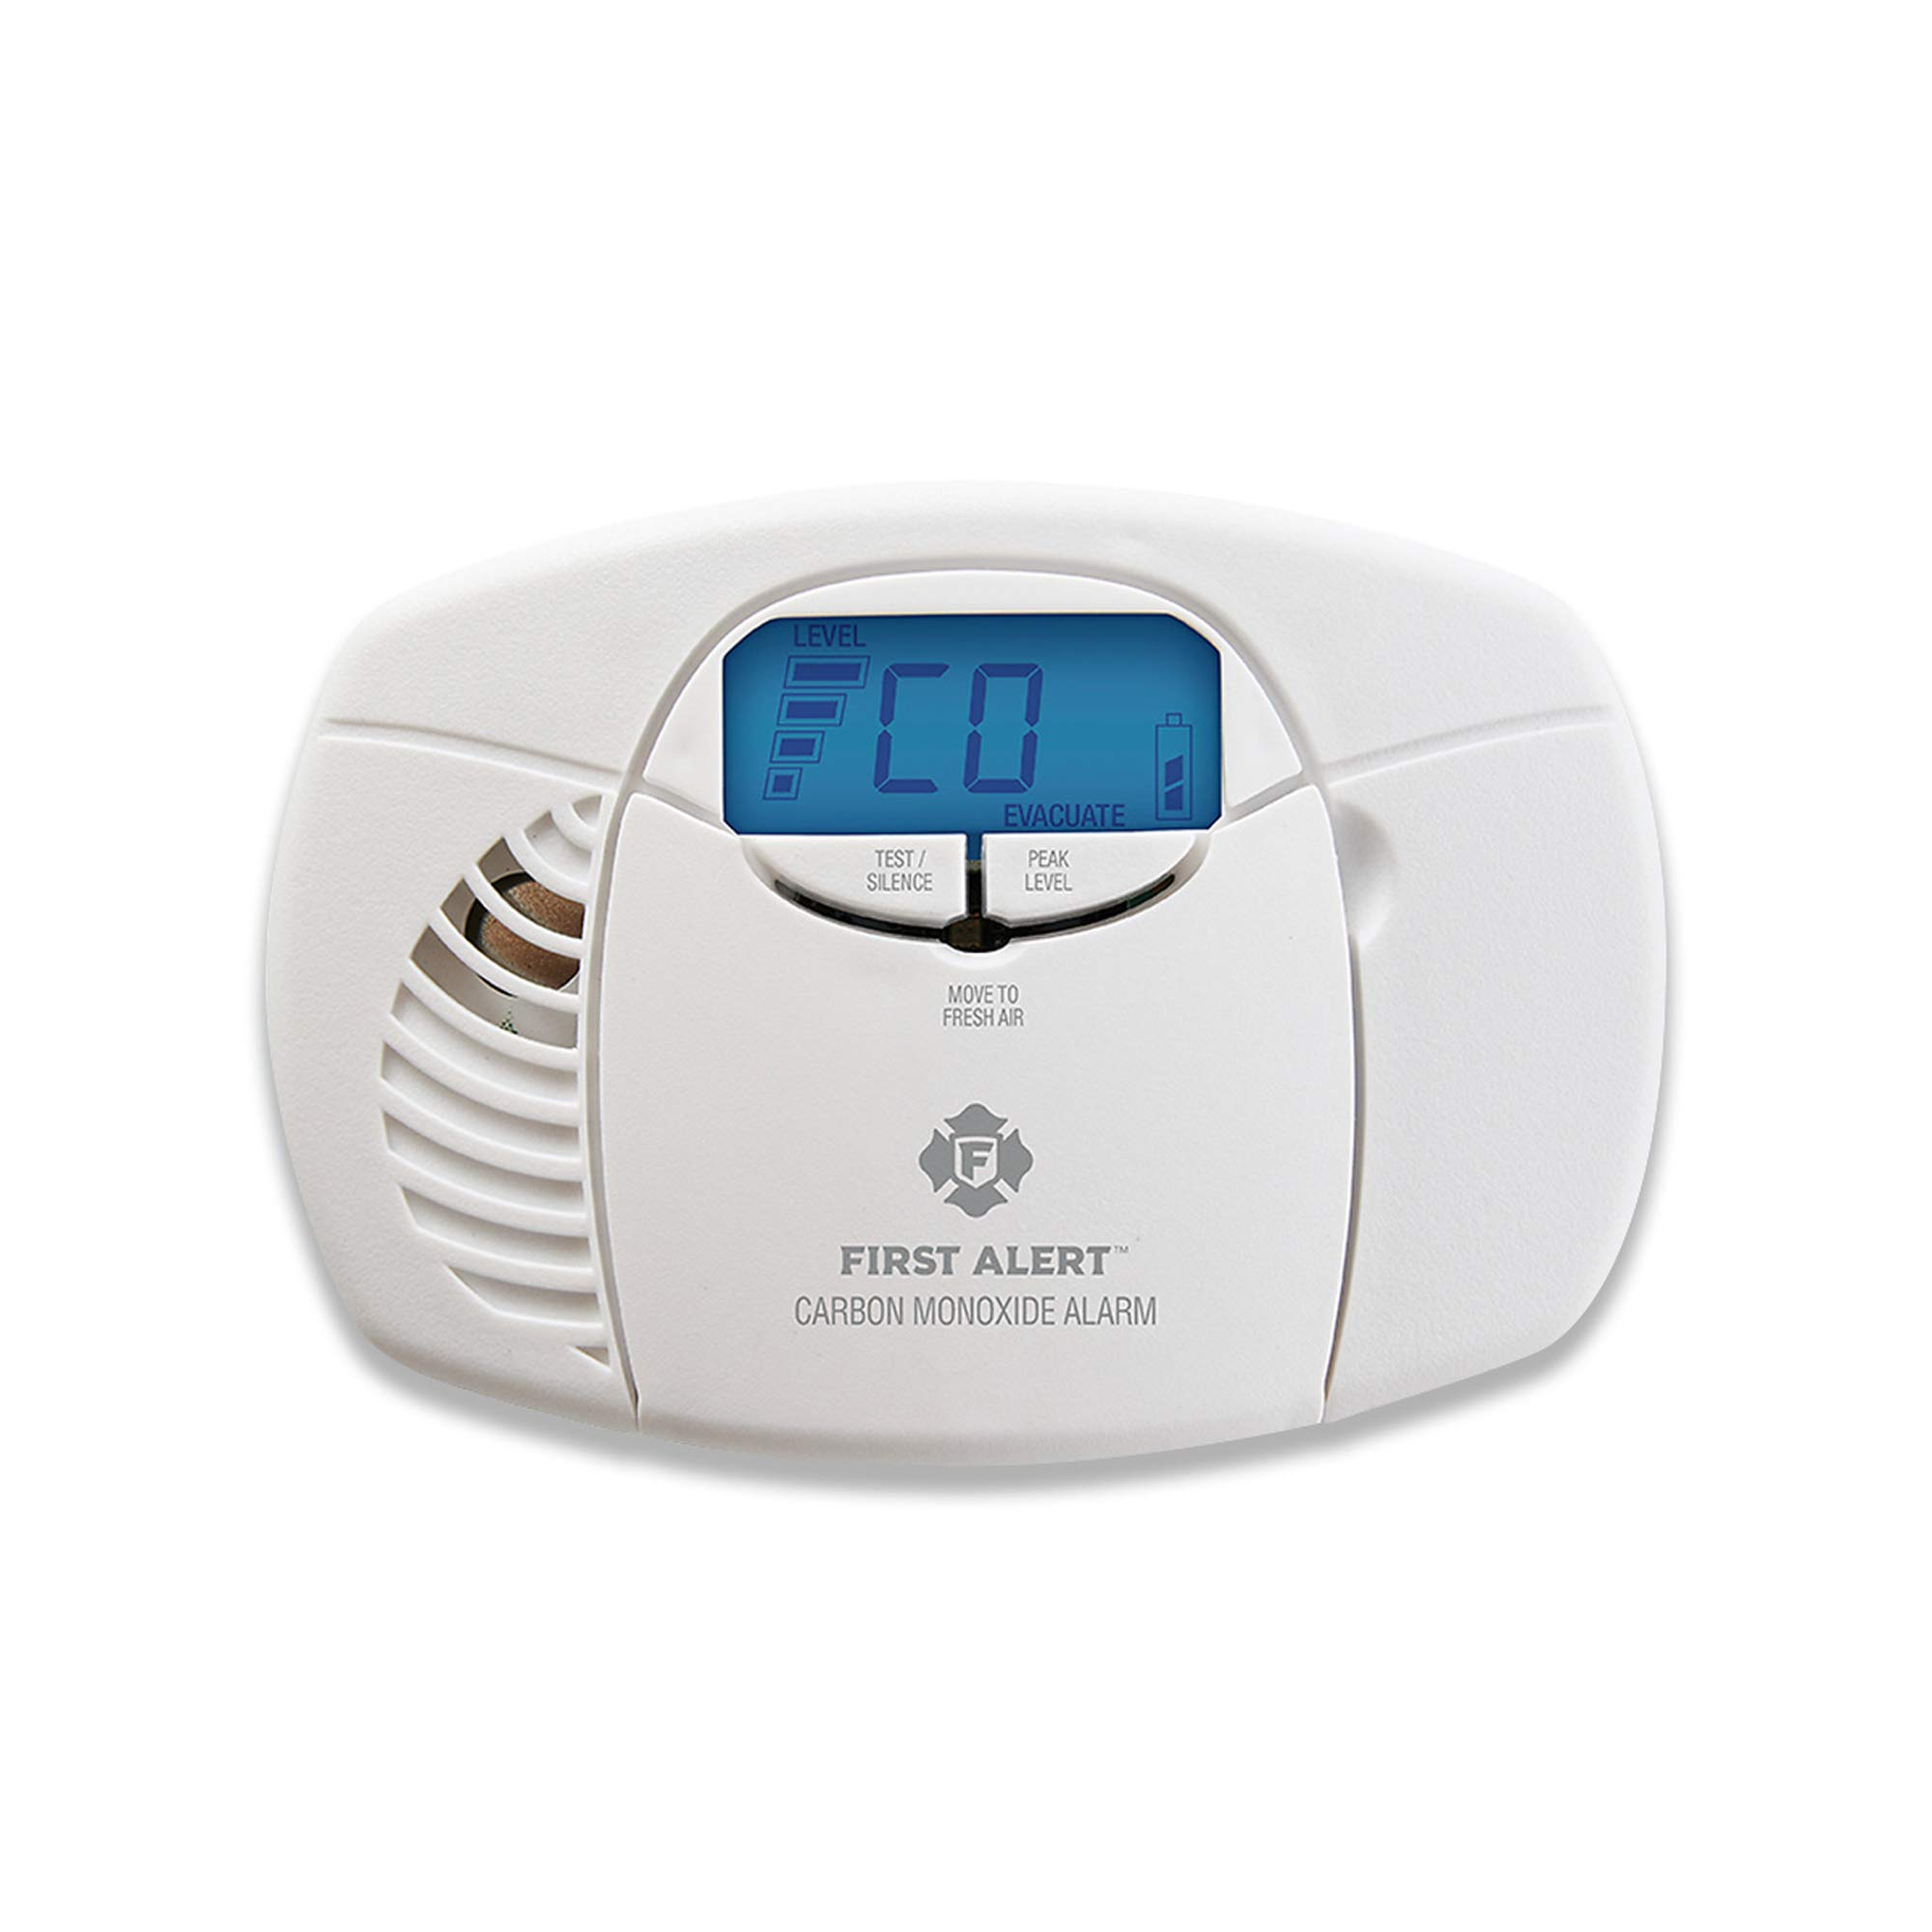 First Alert CO410 Carbon Monoxide Detector with Digital Display and Peak Memory, Battery Operated